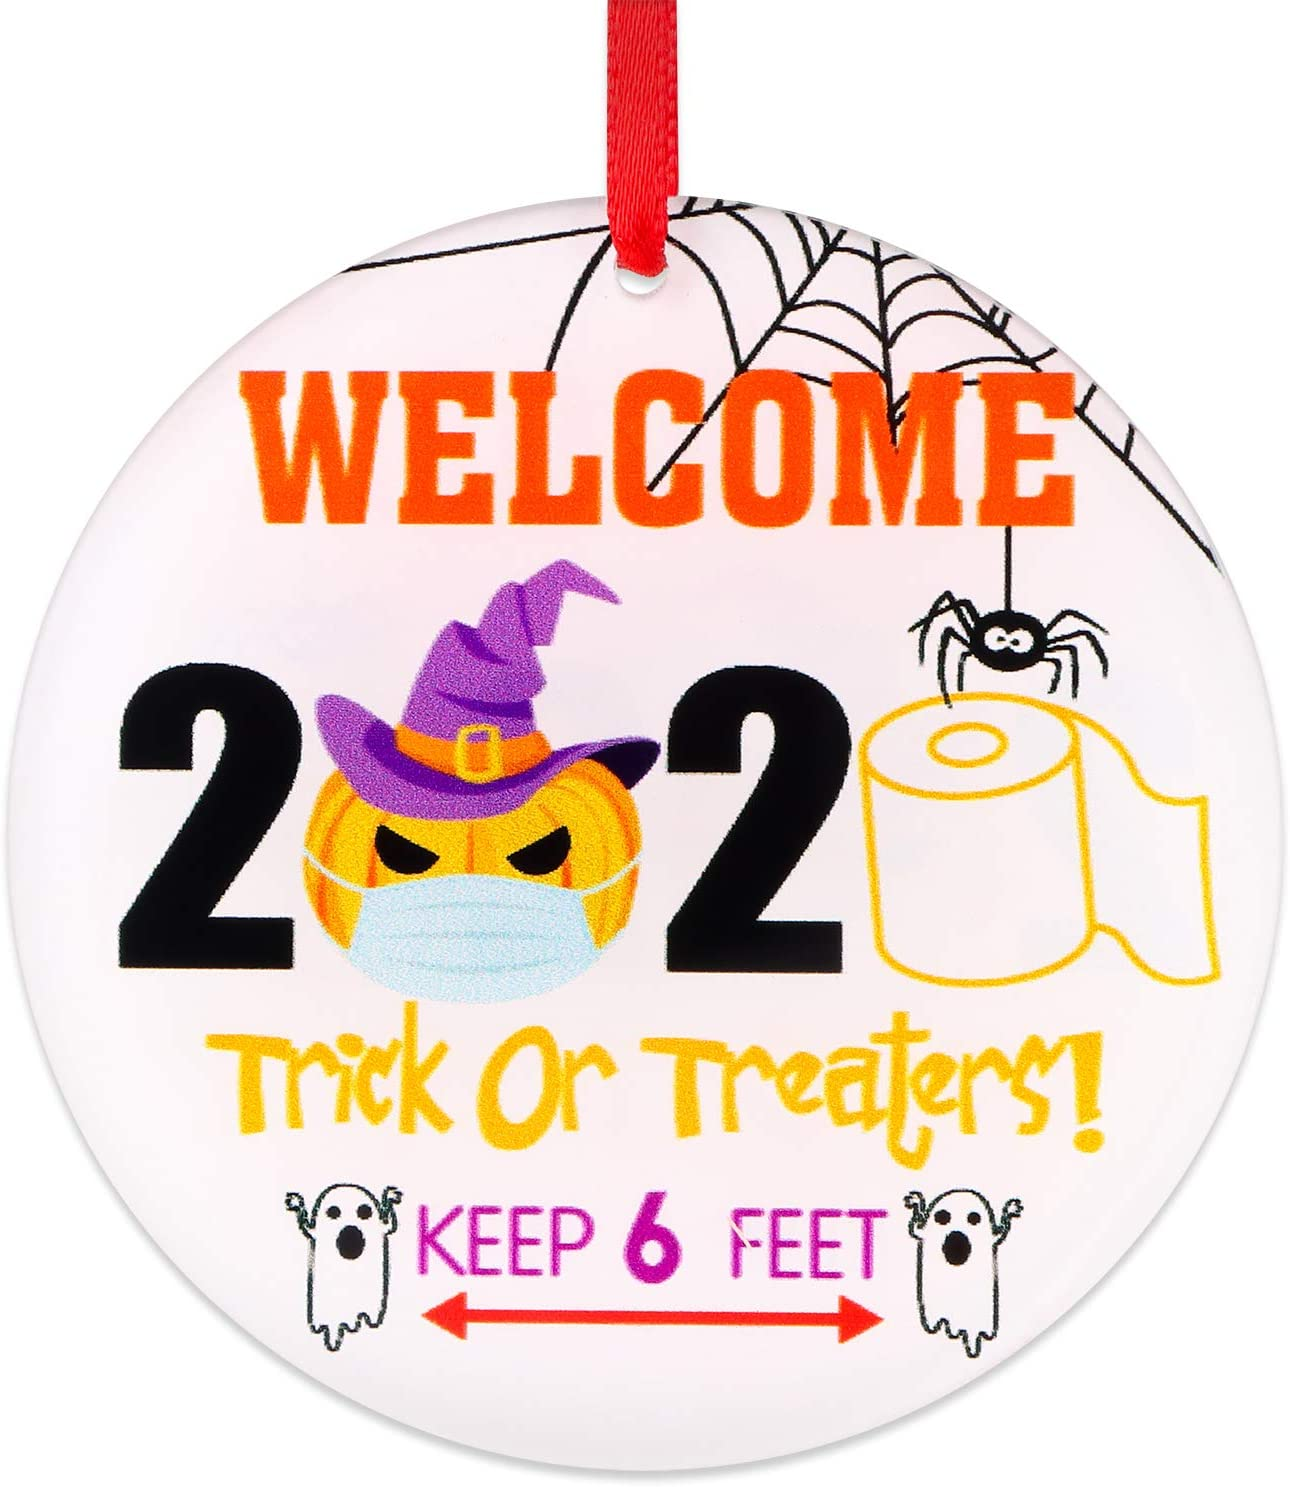 """FaCraft Halloween Quarantine Ornaments,3"""" Welcome Trick Or Treaters Christmas Ornaments Gift,Halloween Pumpkin with Wear a Face Mask Ornaments for Tree Decorations,Halloween Party Decor"""